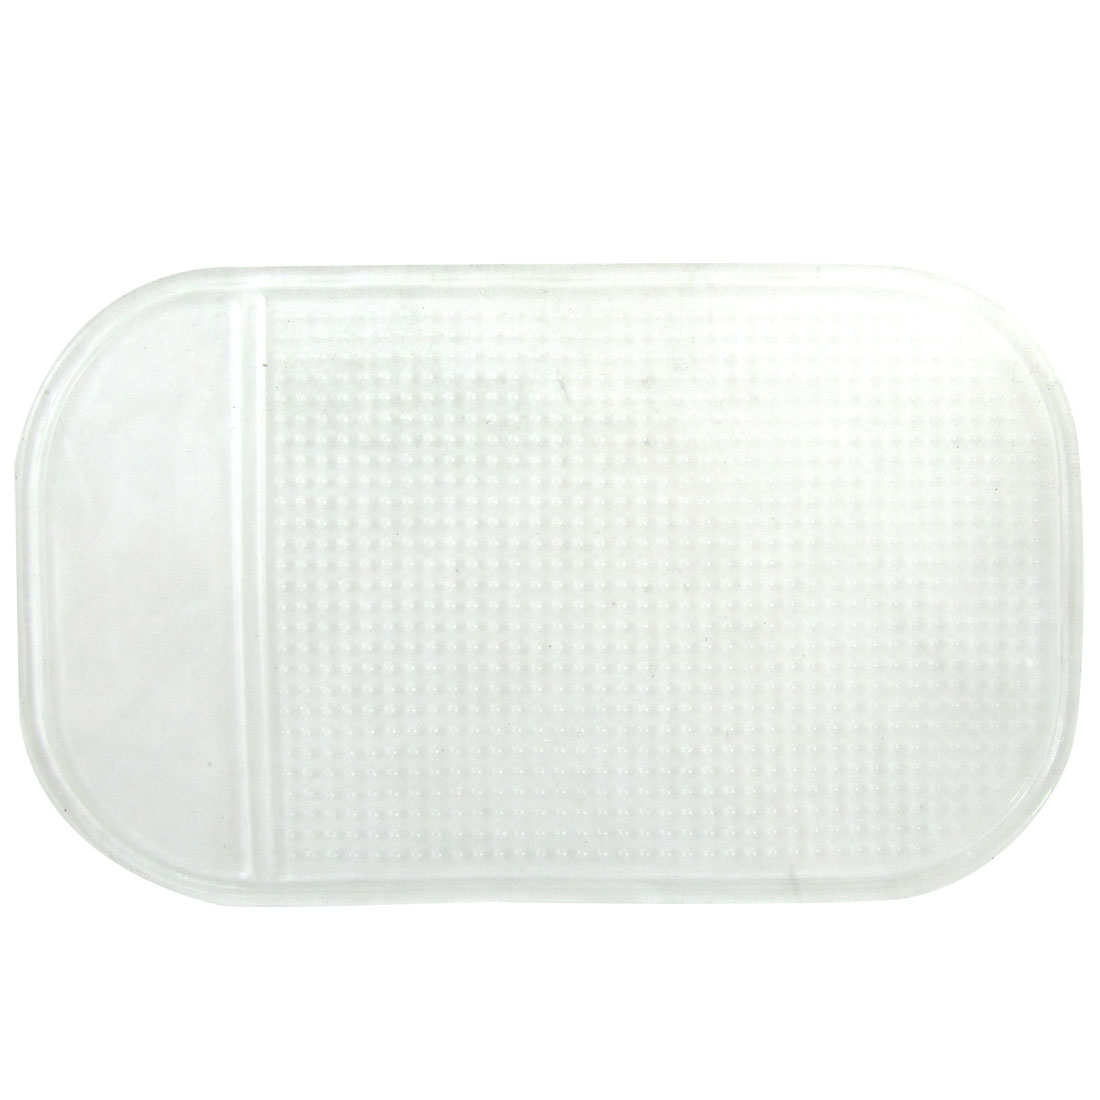 Car Phone Mp4 Sticky Holder Nonslip Mat Pad Clear White 2 Pcs